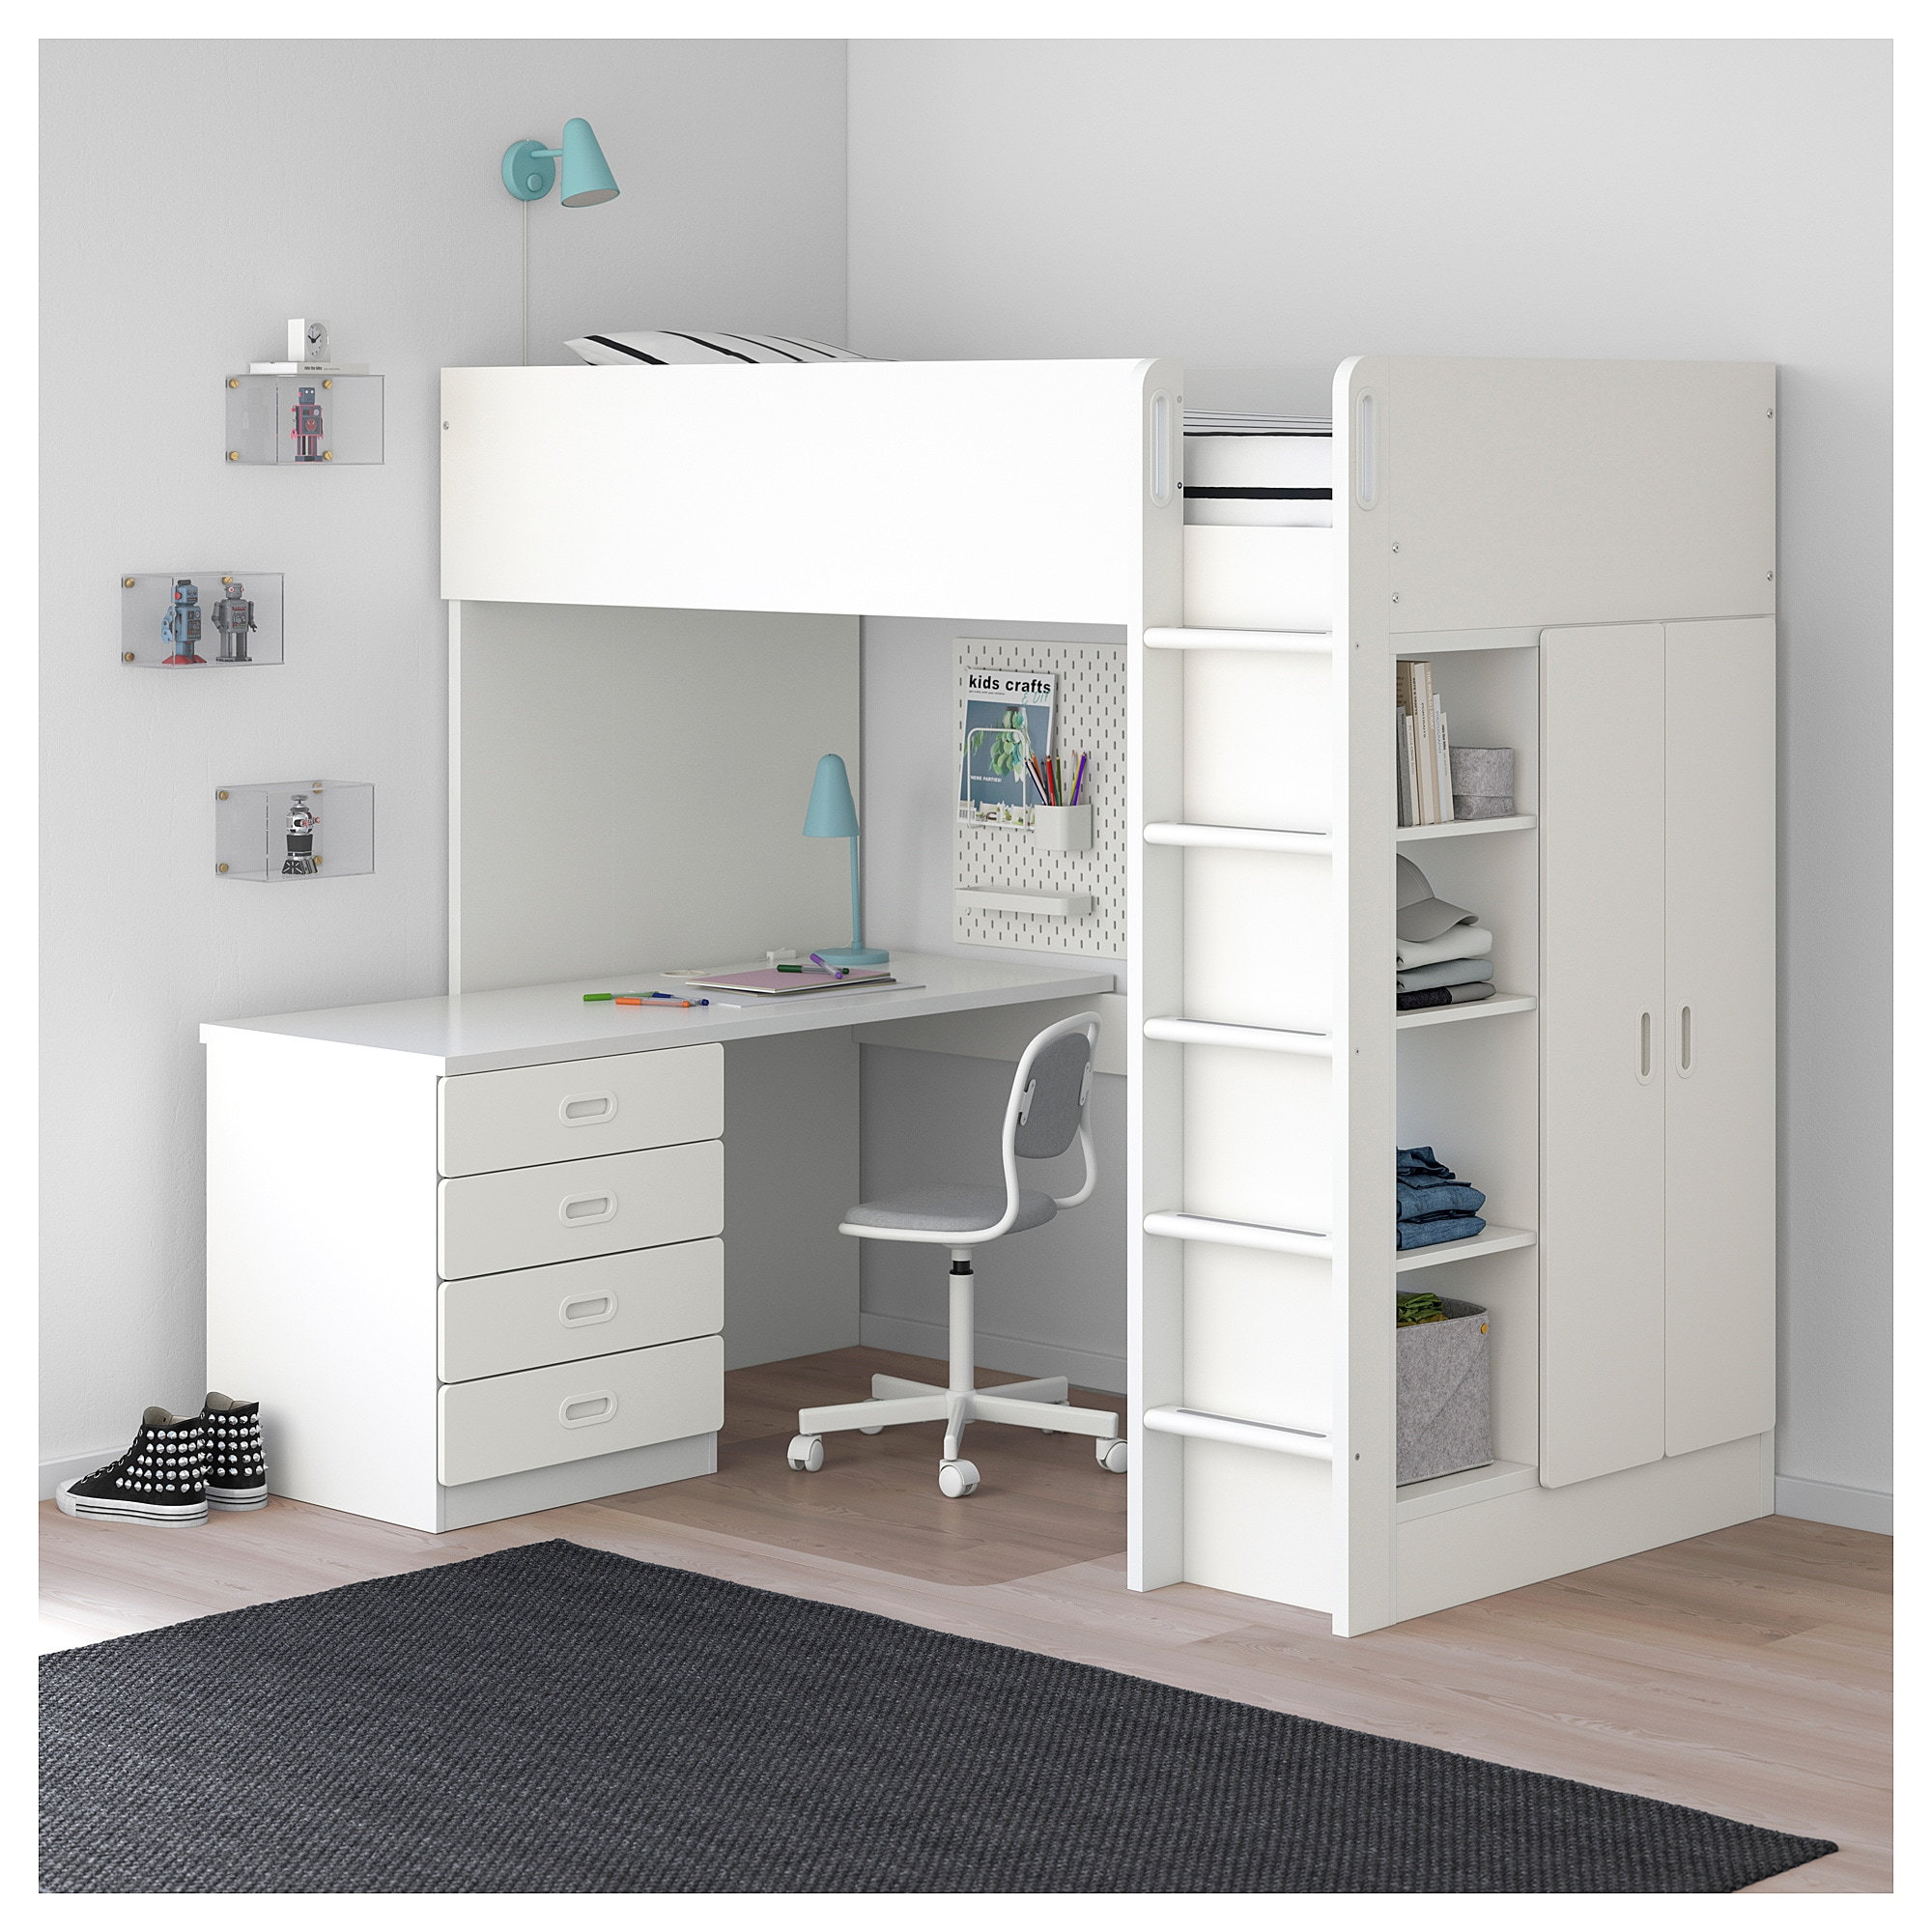 Loft Bed Combo W 4 Drawers2 Doors Stuva Fritids White White